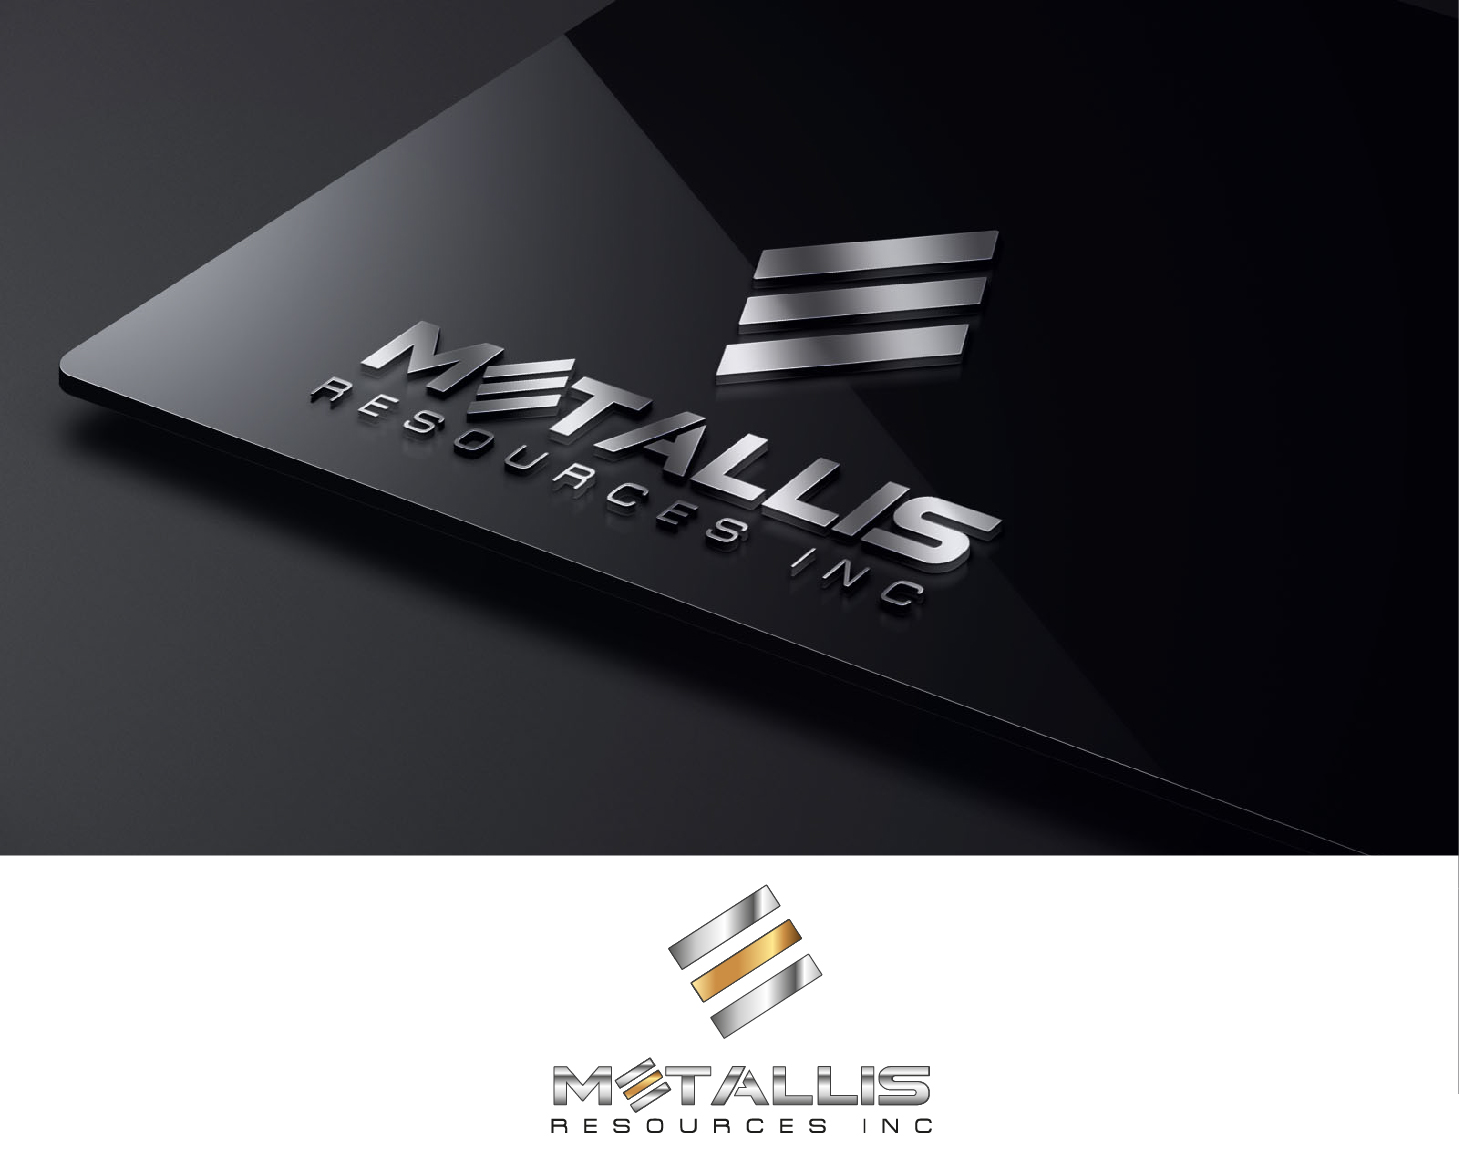 Logo Design by VENTSISLAV KOVACHEV - Entry No. 158 in the Logo Design Contest Metallis Resources Inc Logo Design.